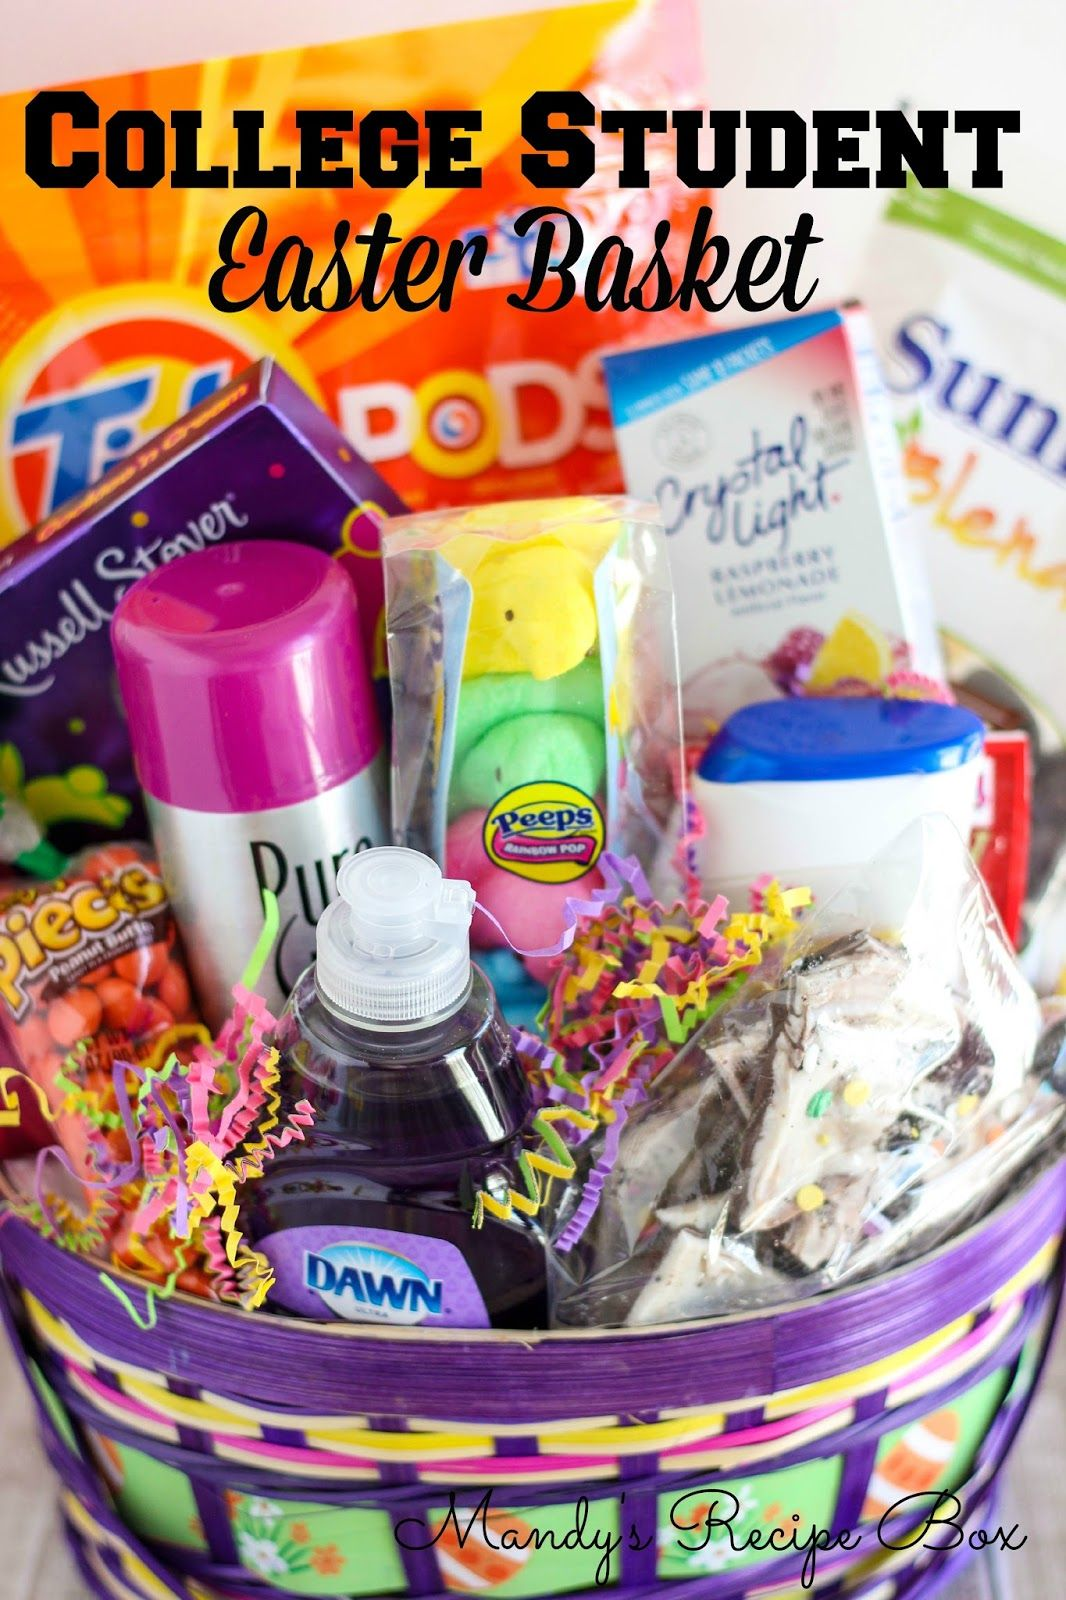 College Student Easter Basket Easter Gift Baskets Easter